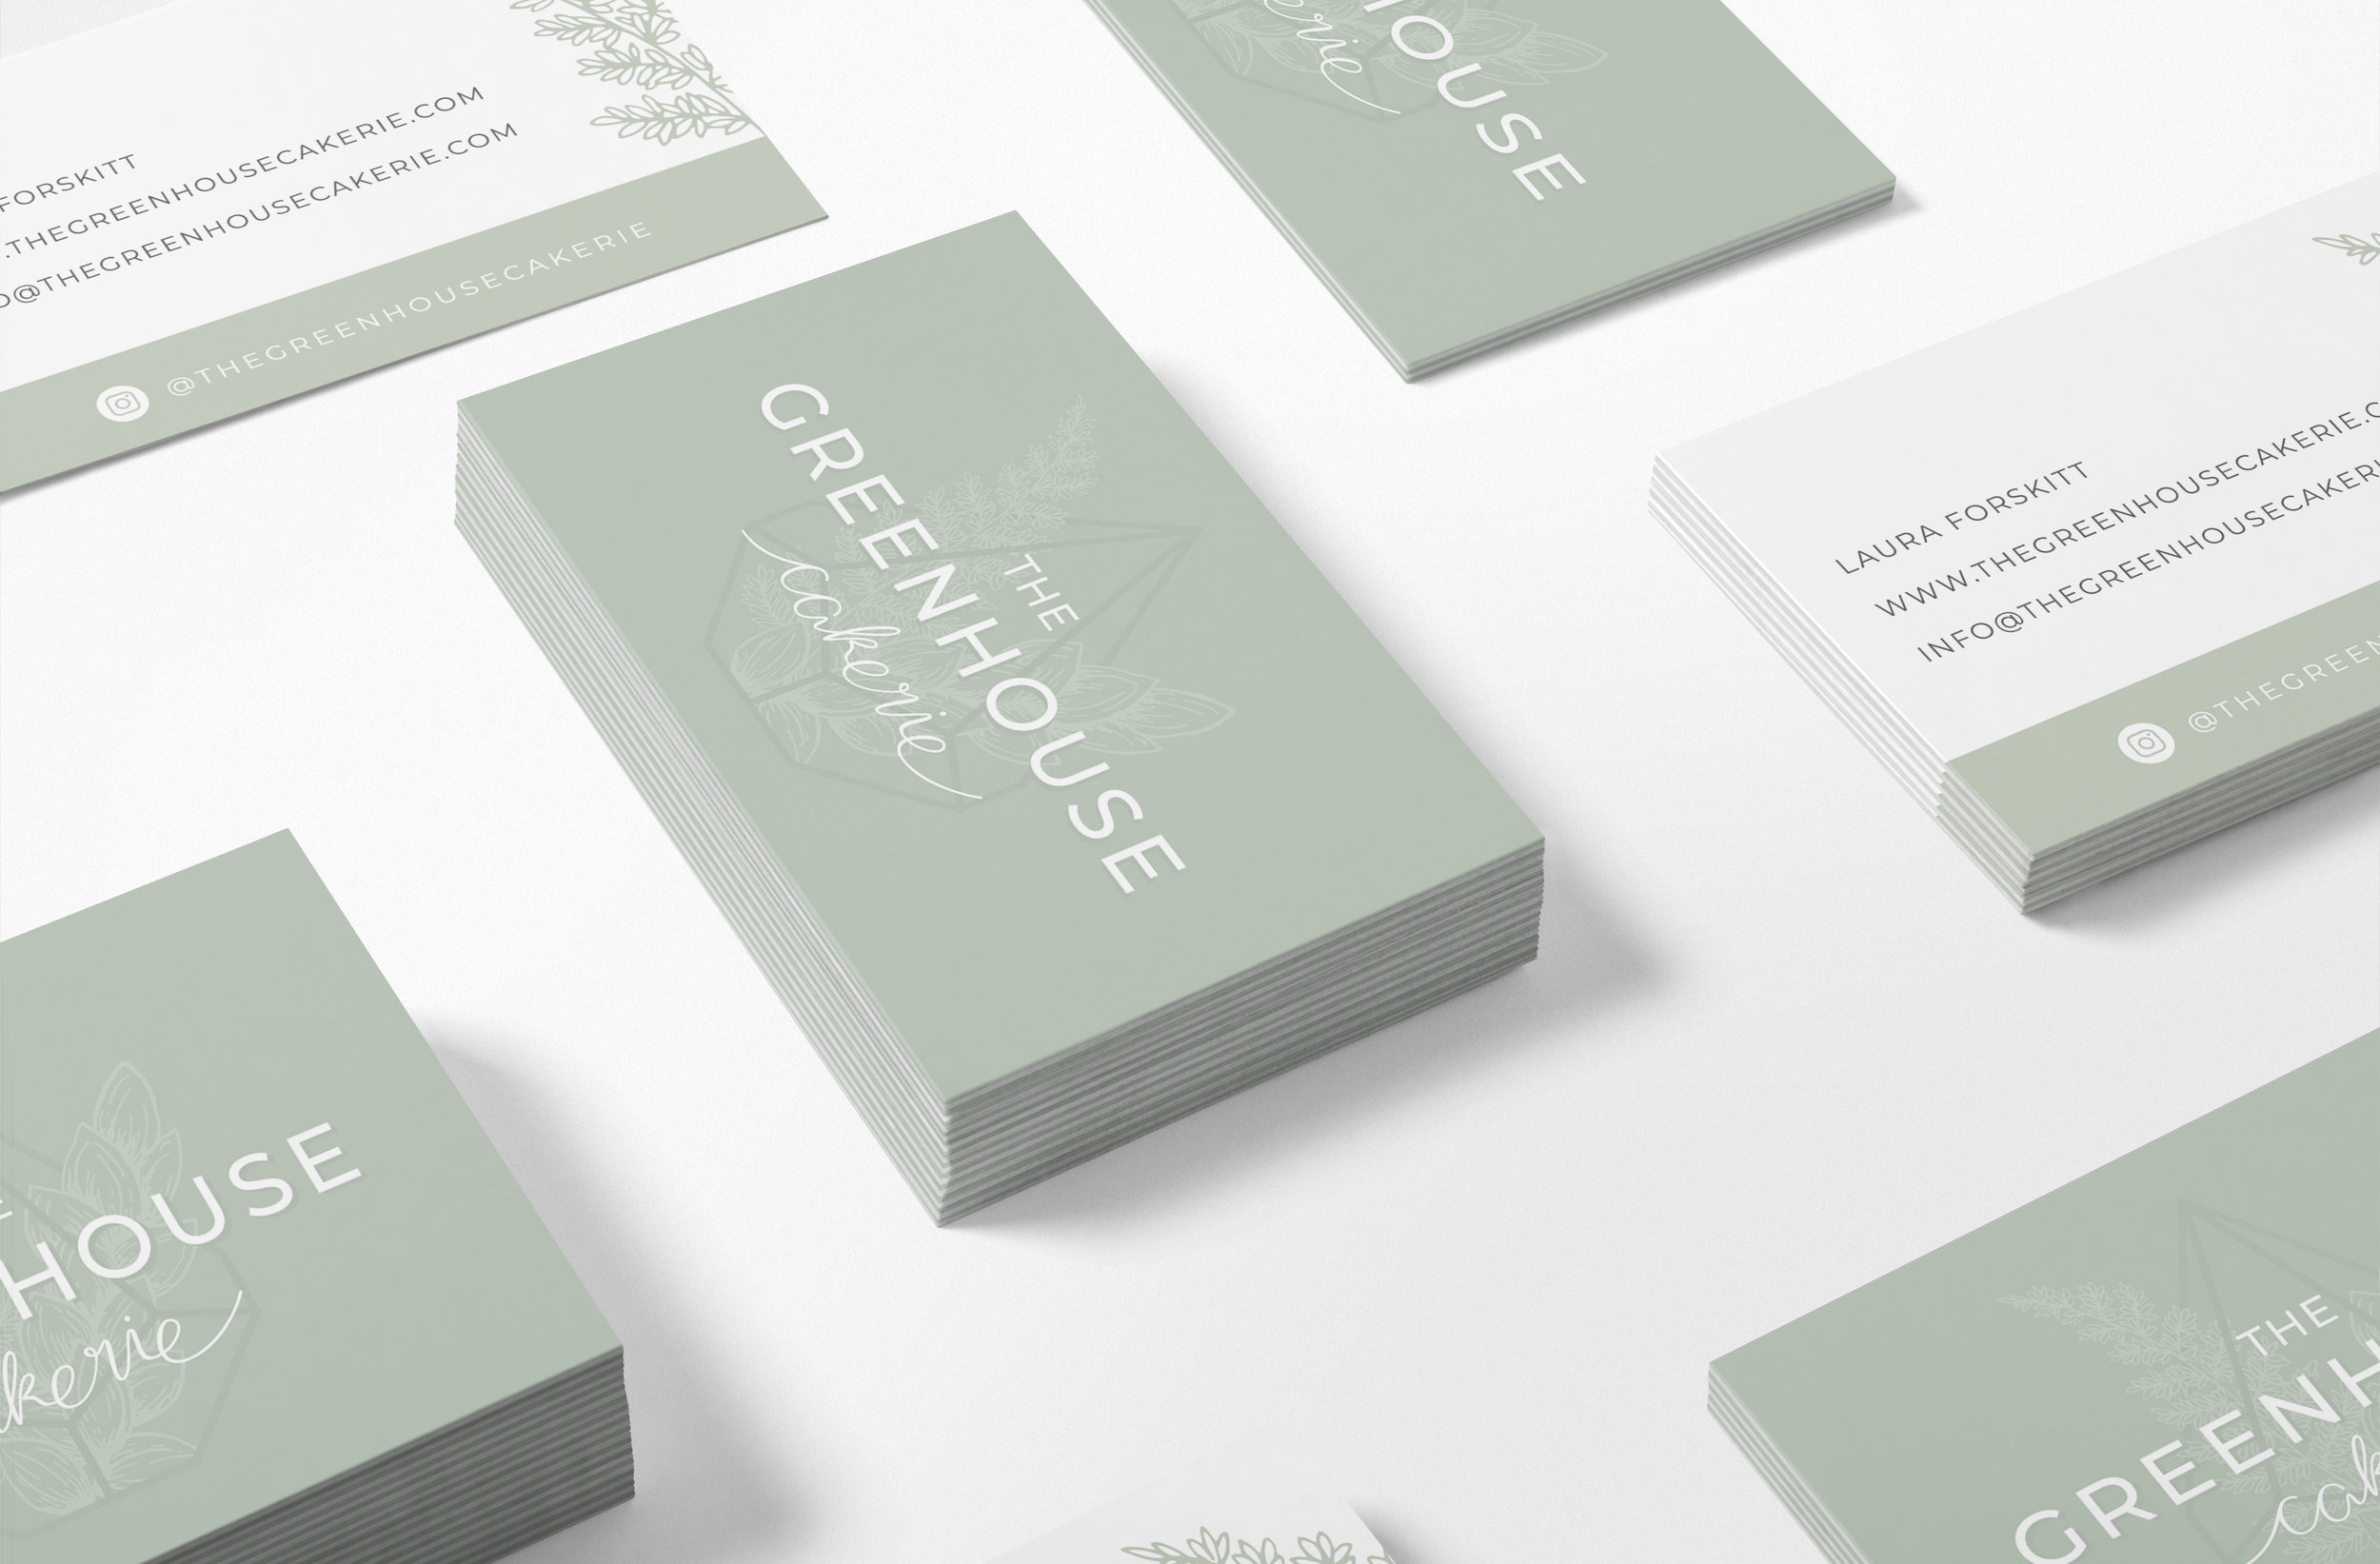 The Greenhouse Cakerie - Logo & Brand Design by Bea & Bloom Creative Design Studio